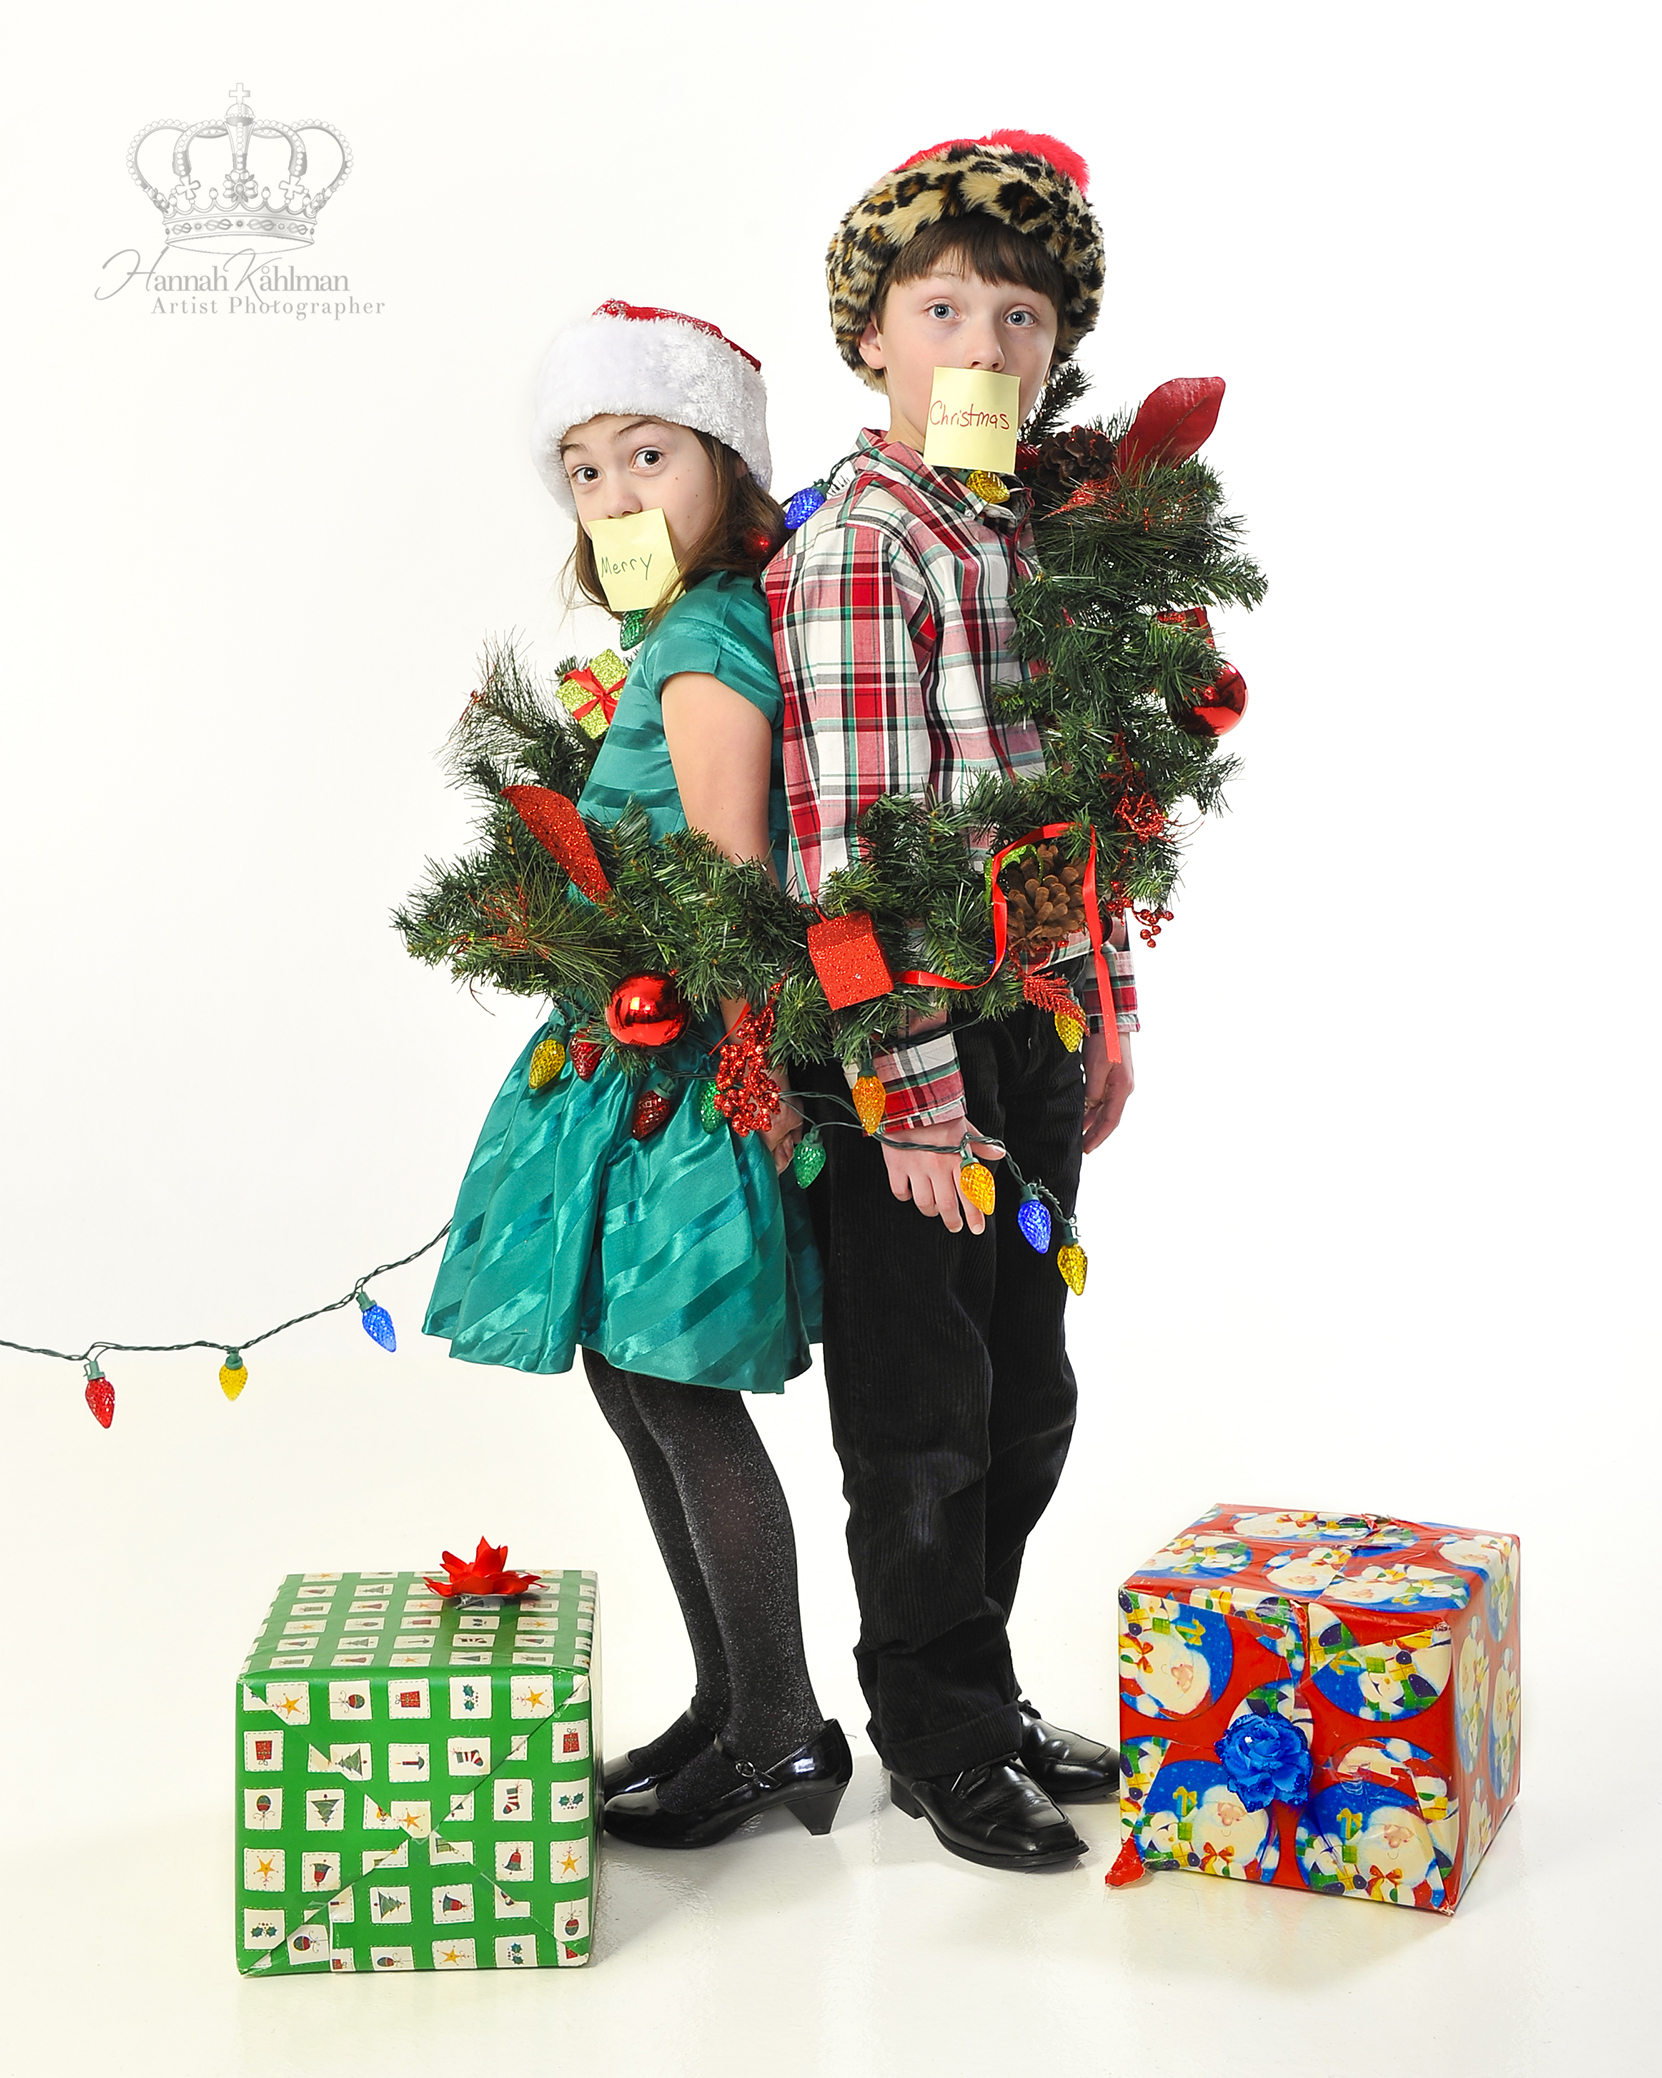 Creative_Christmas_photo_with_children_c